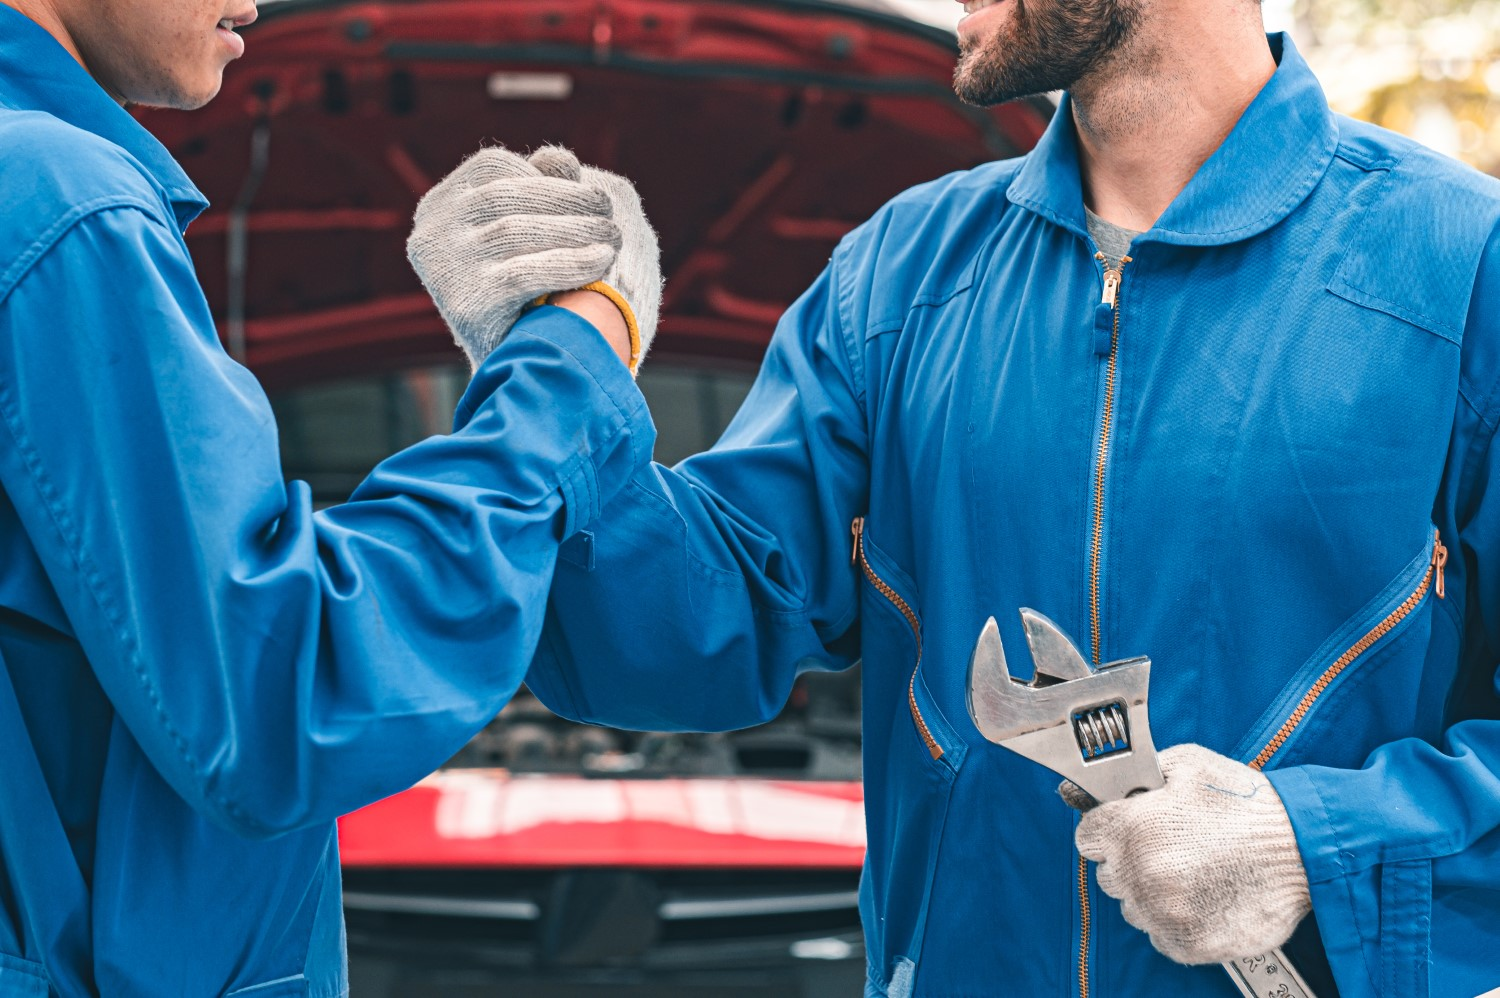 stock-photo-car-mechanic-ready-for-work-auto-mechanic-with-large-wrench-in-hands-ideas-how-to-fix-the-problem-1843975420-min